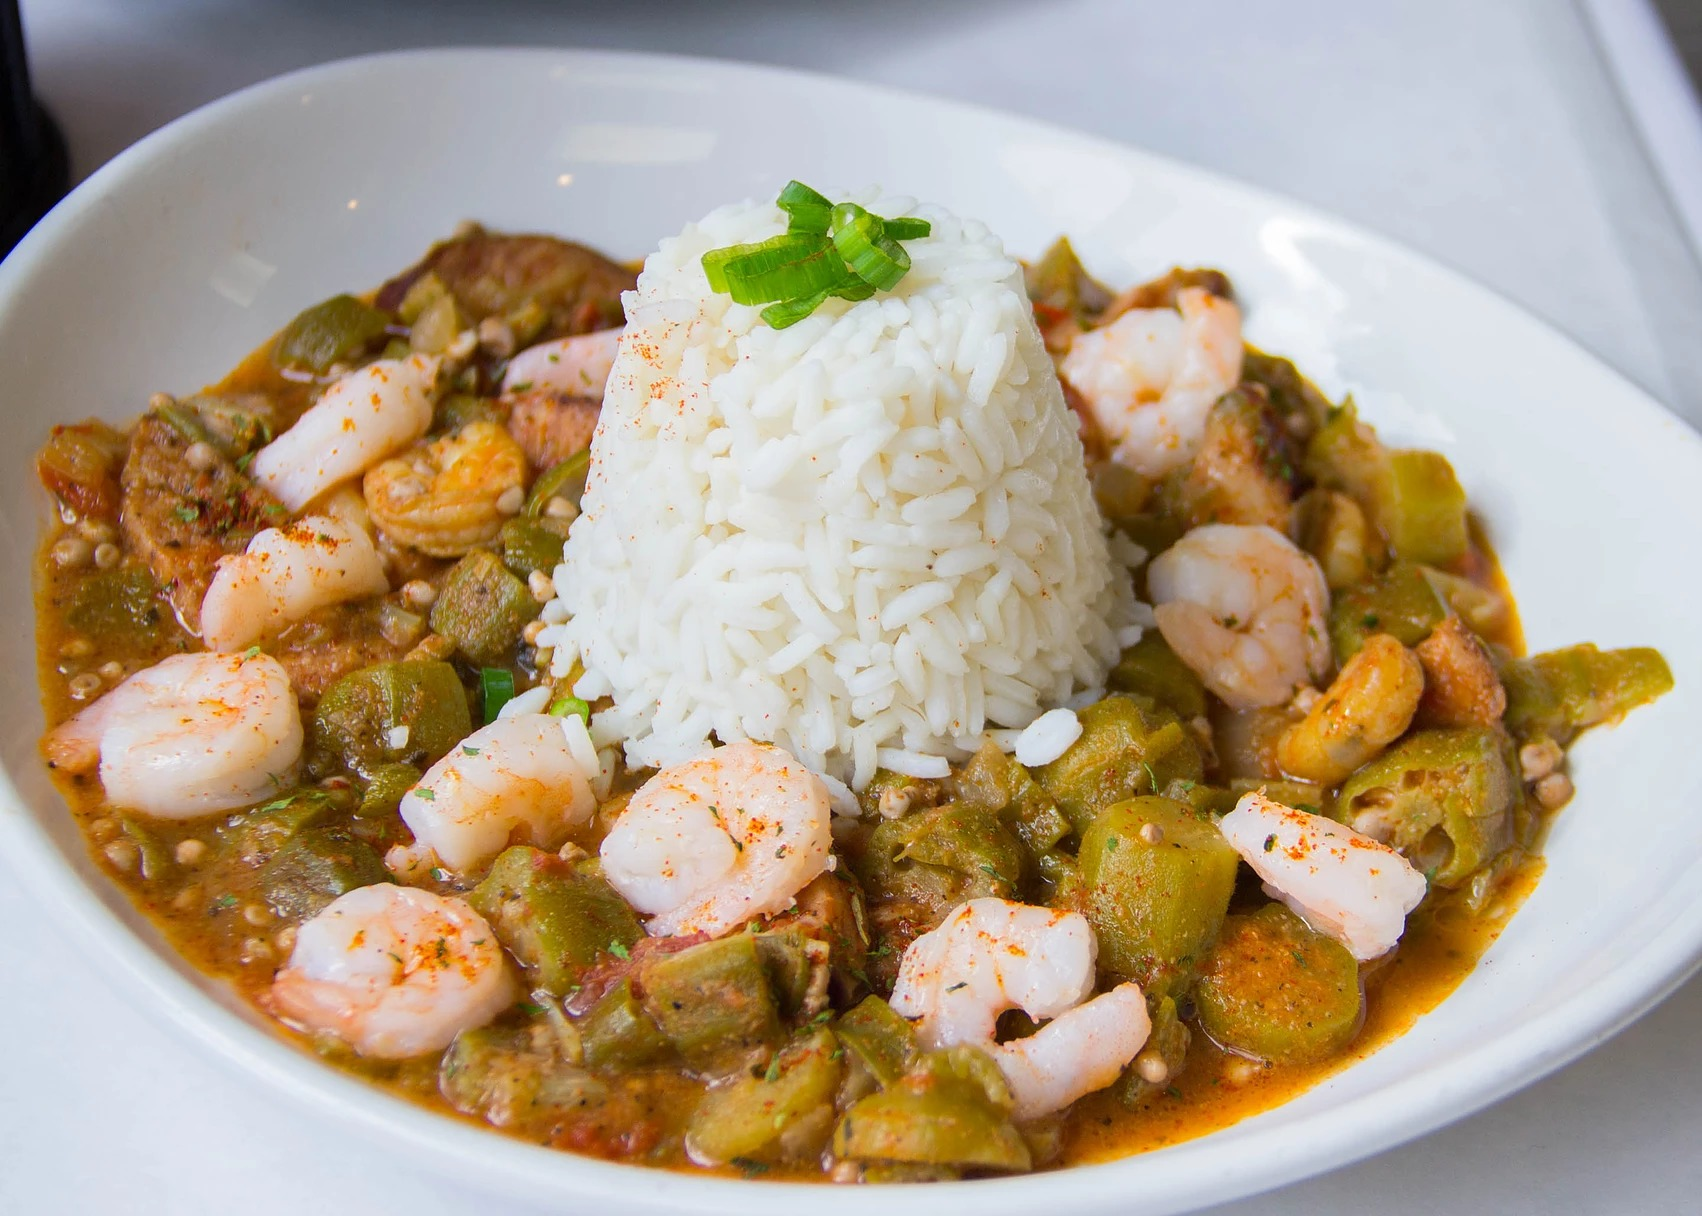 Sassafras Creole Kitchen's Downtown Location Closes After Short Run